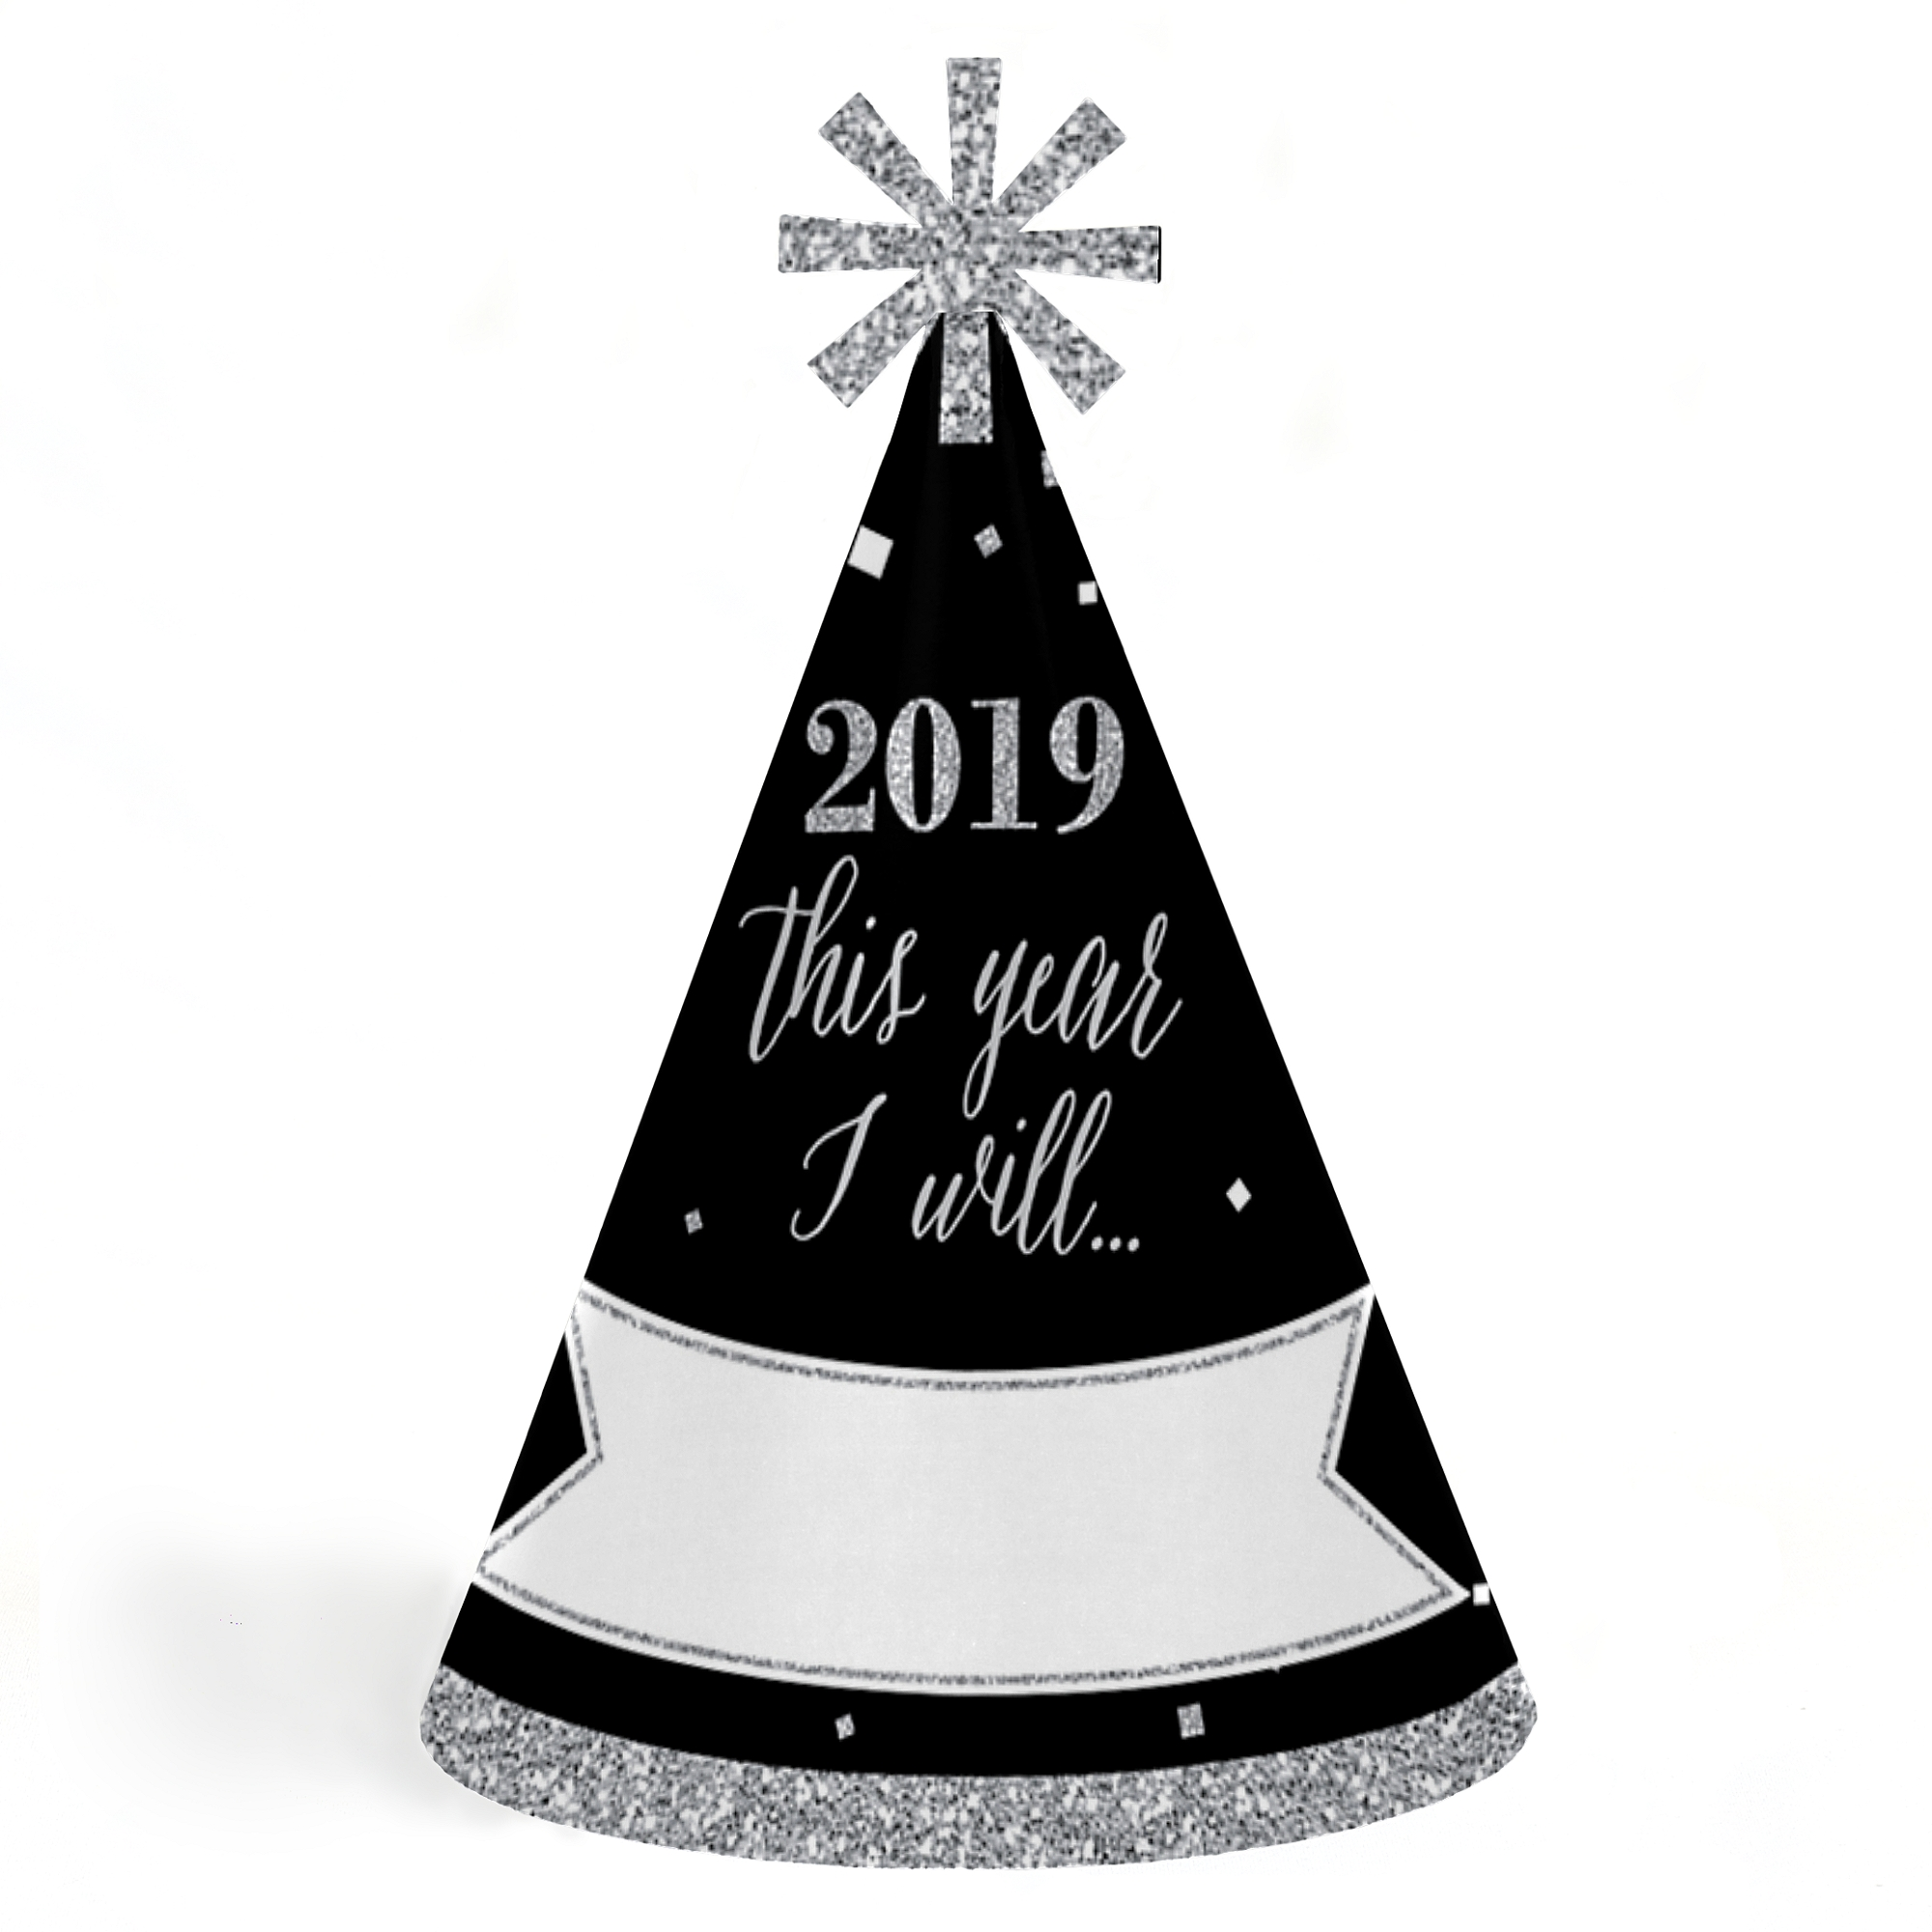 New Year's Eve - Silver - 2019 Cone New Years Eve Resolution Party Hats for Kids and Adults - Set of 8 (Standard Size)